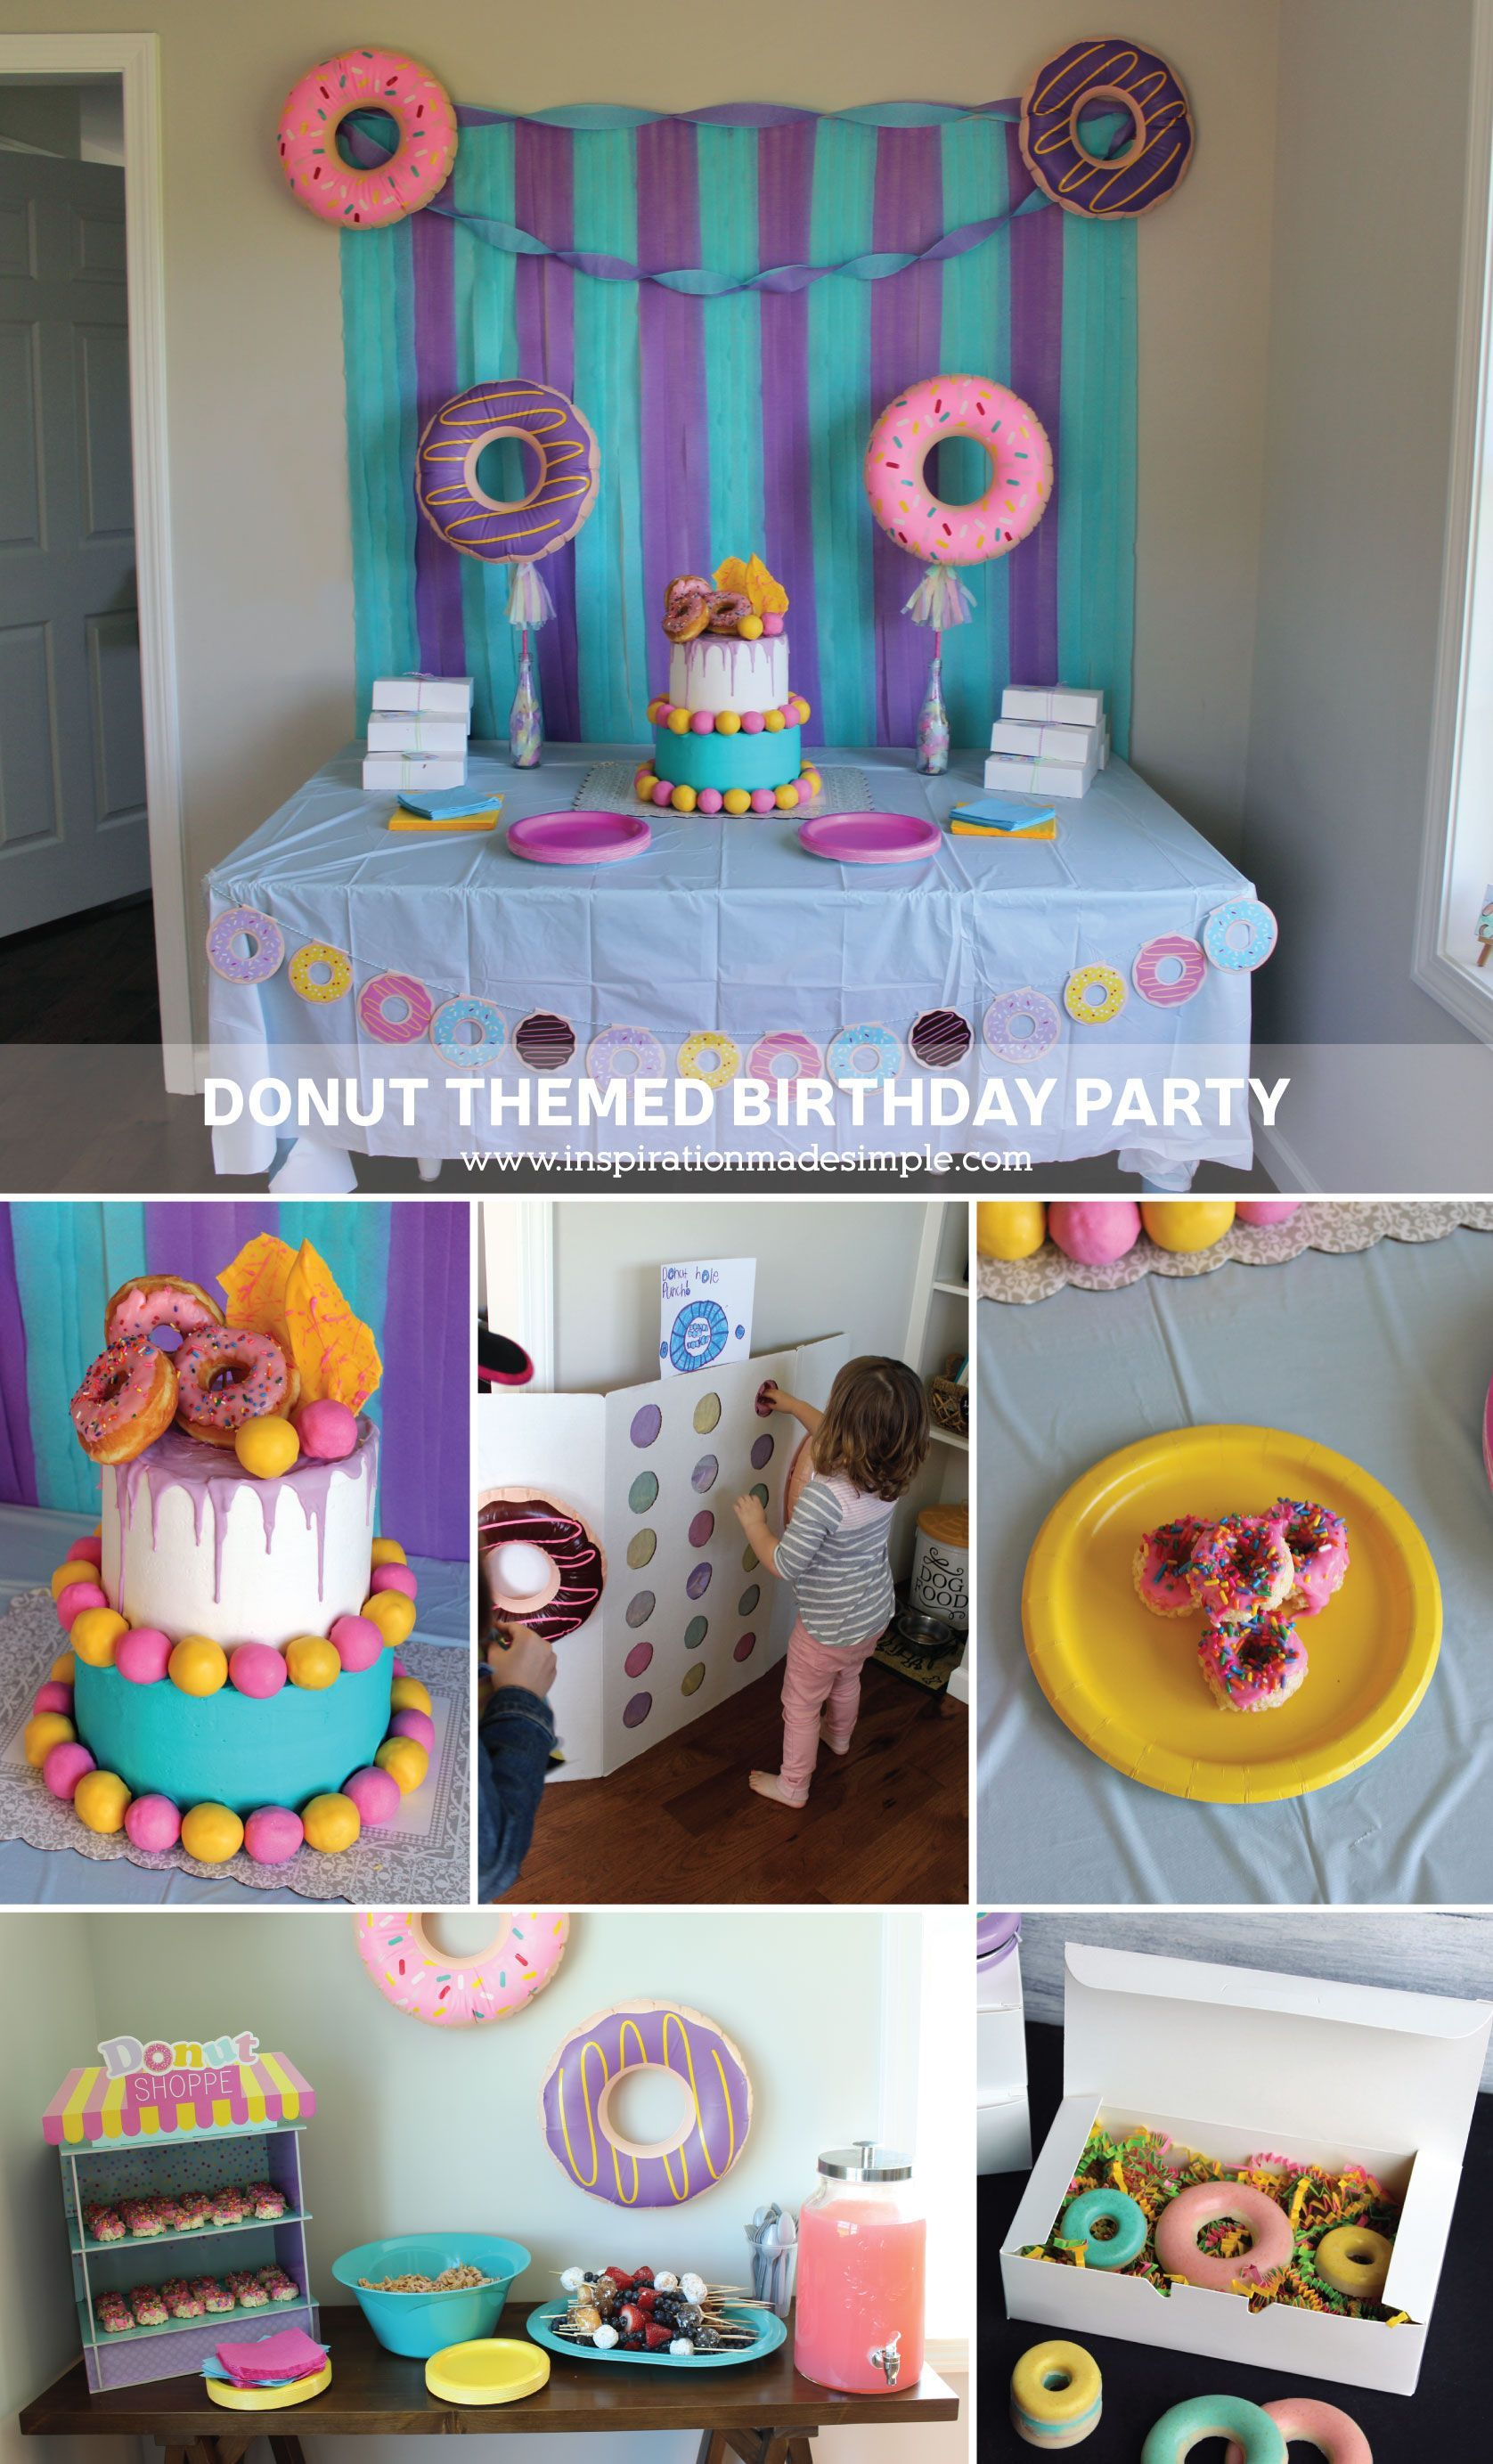 Diy Party Simple Diy Donut Themed Birthday Party Diypartythemes Diy Party